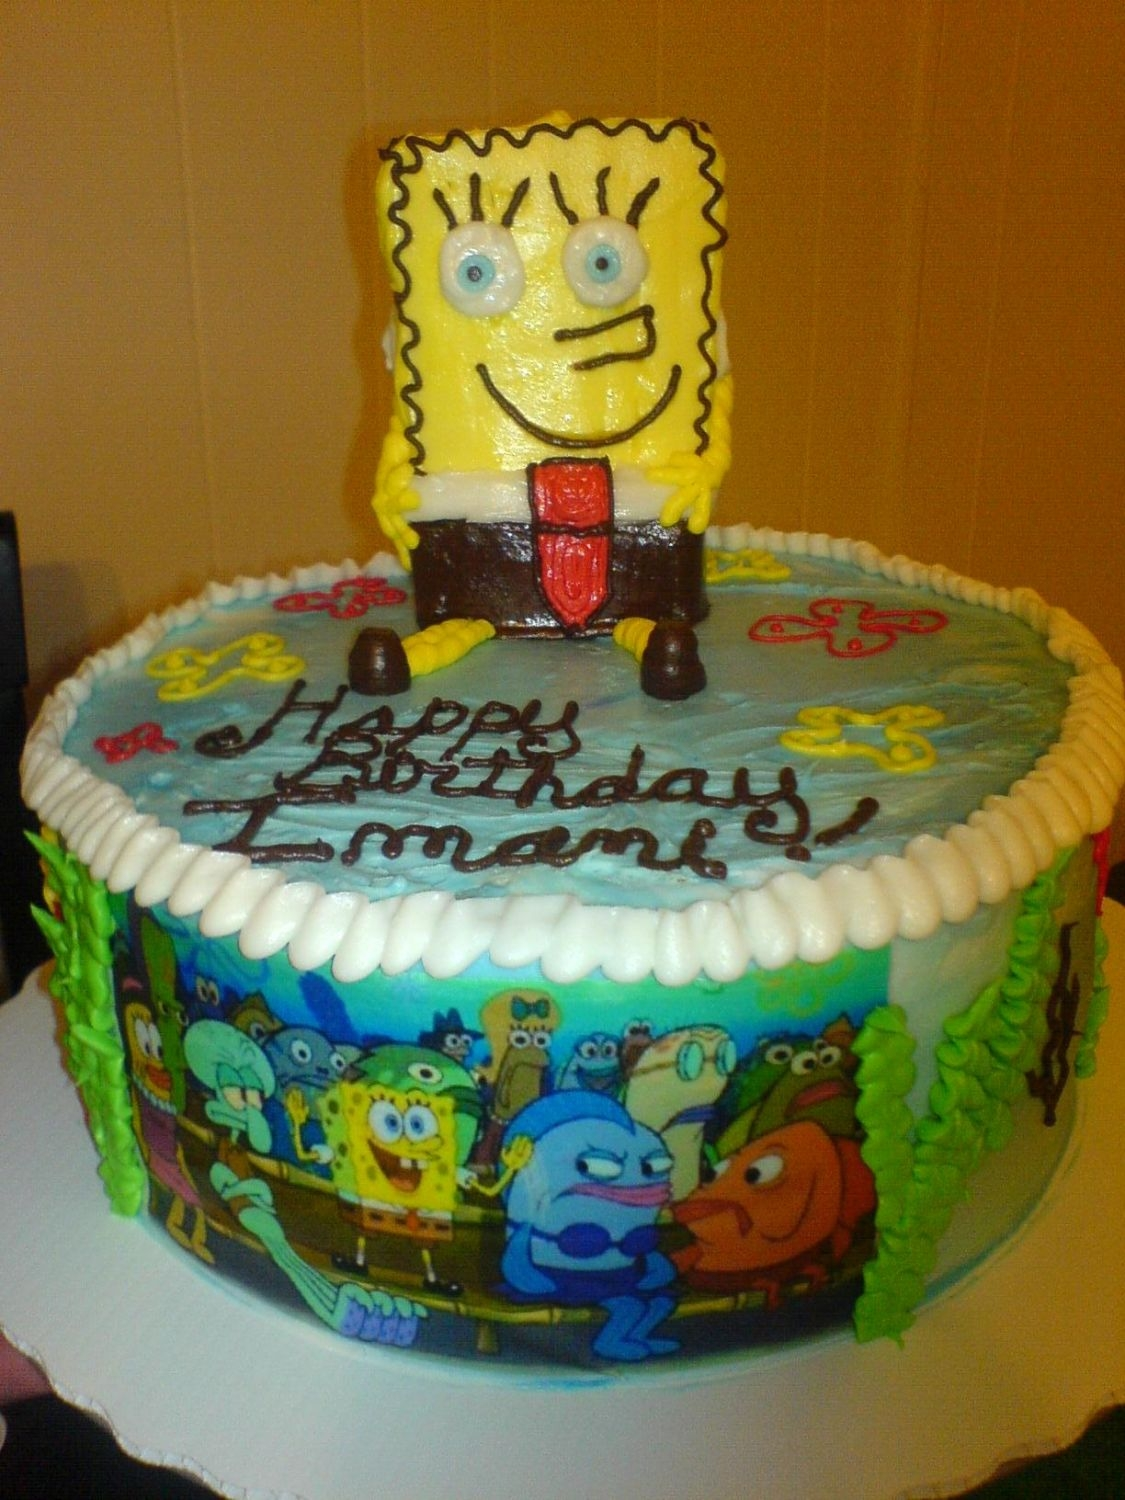 Spongebob Chocolate cake with cookies and cream filling!